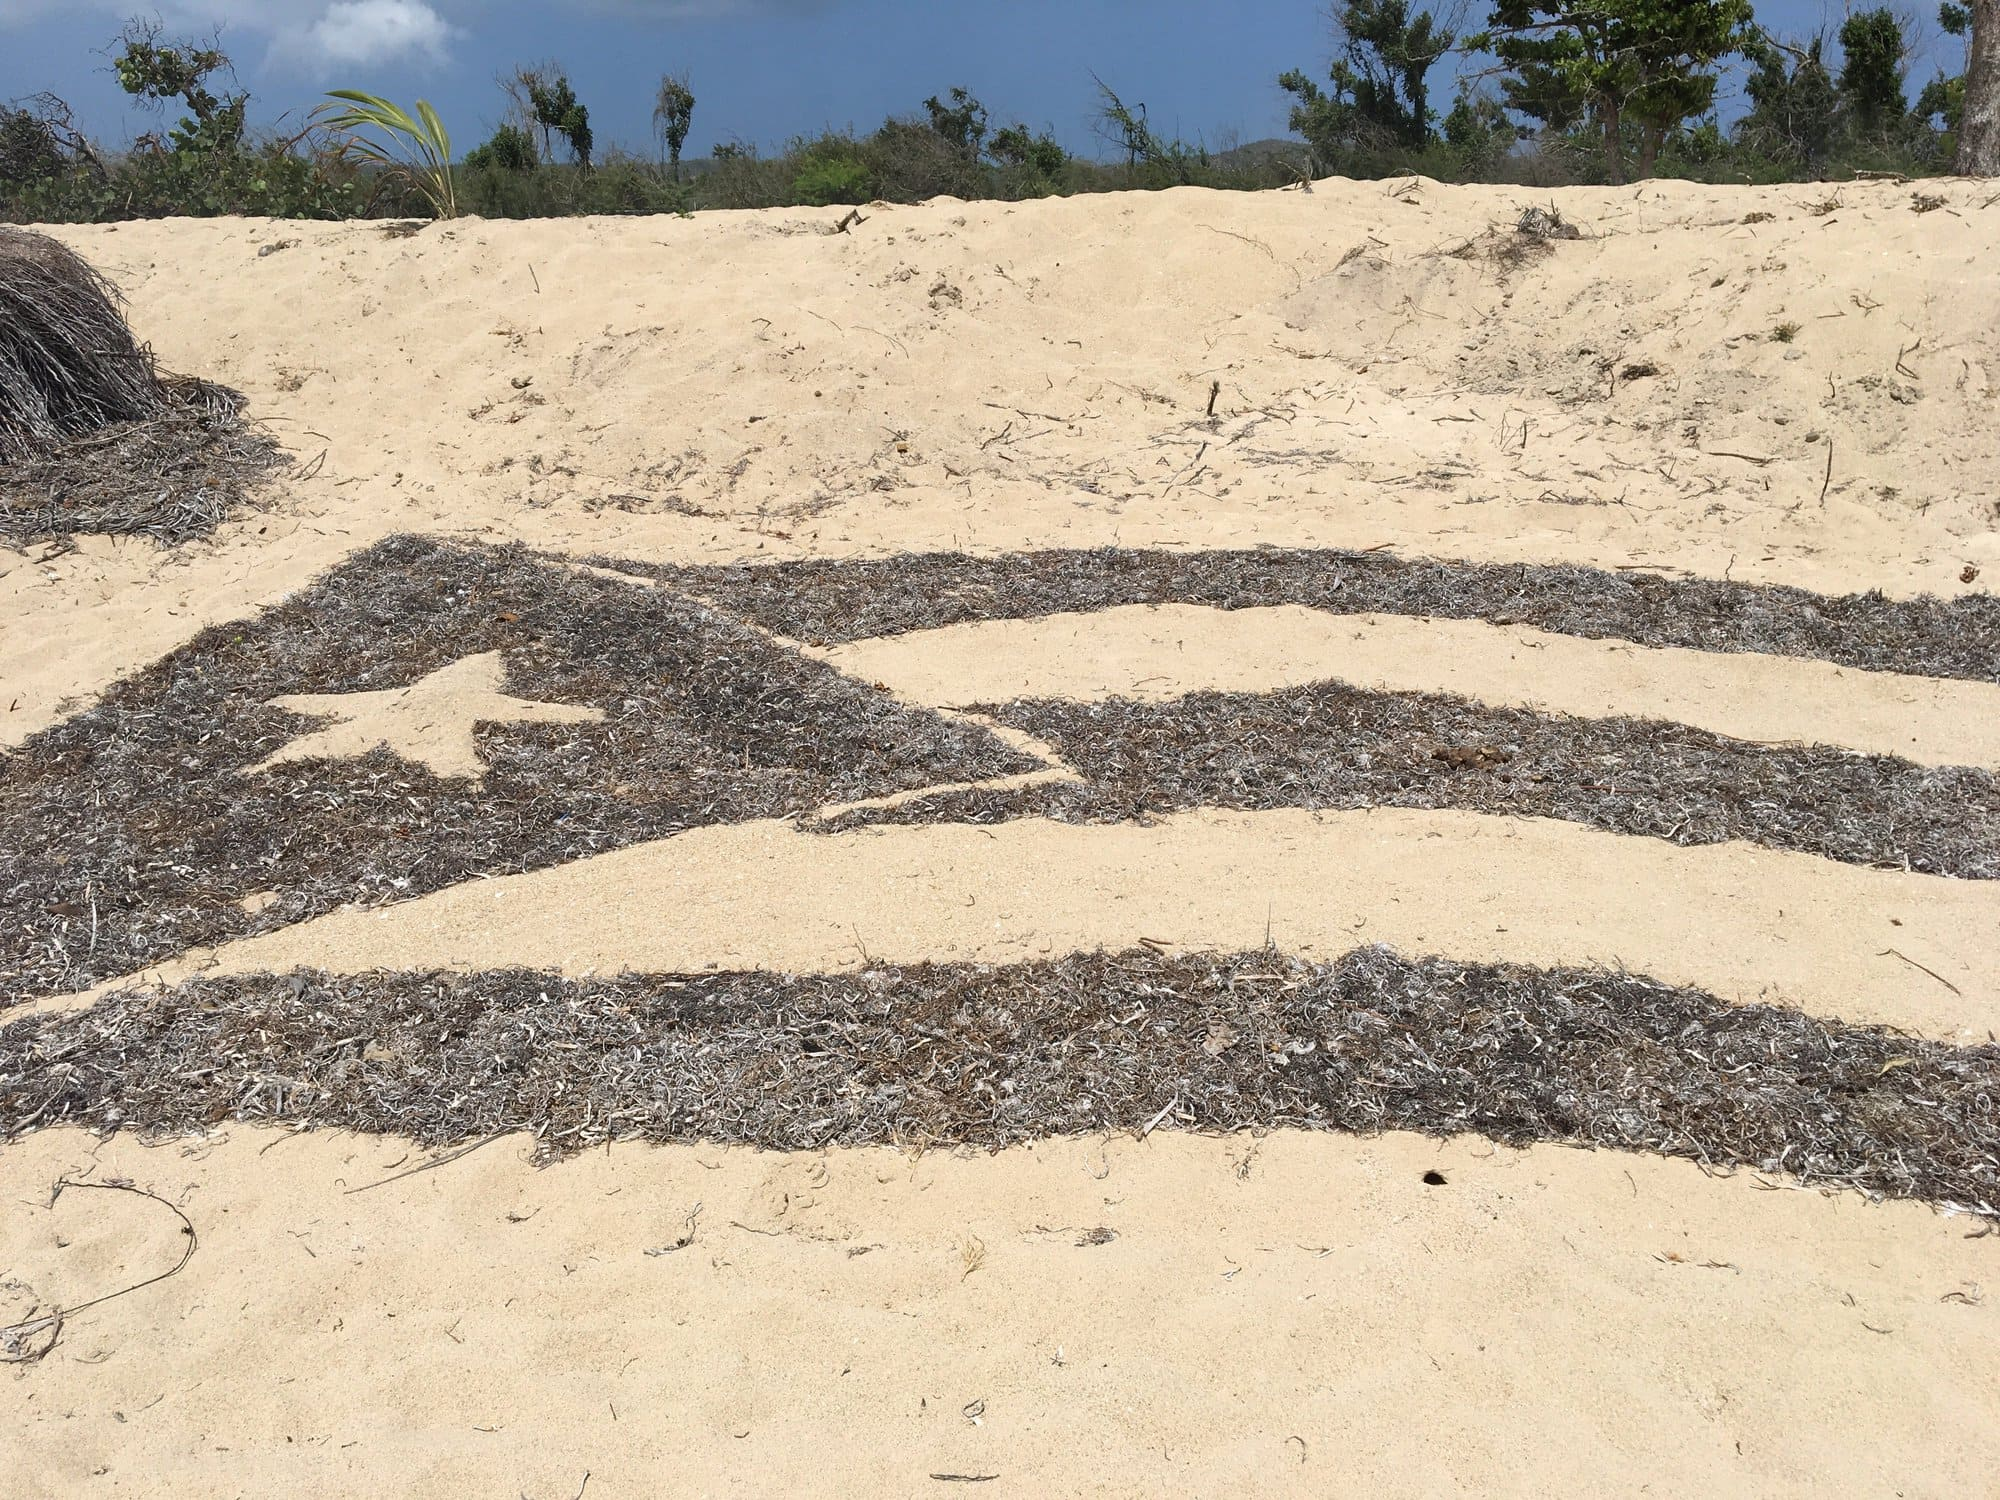 Puerto Rico flag in the sand, made from seaweed